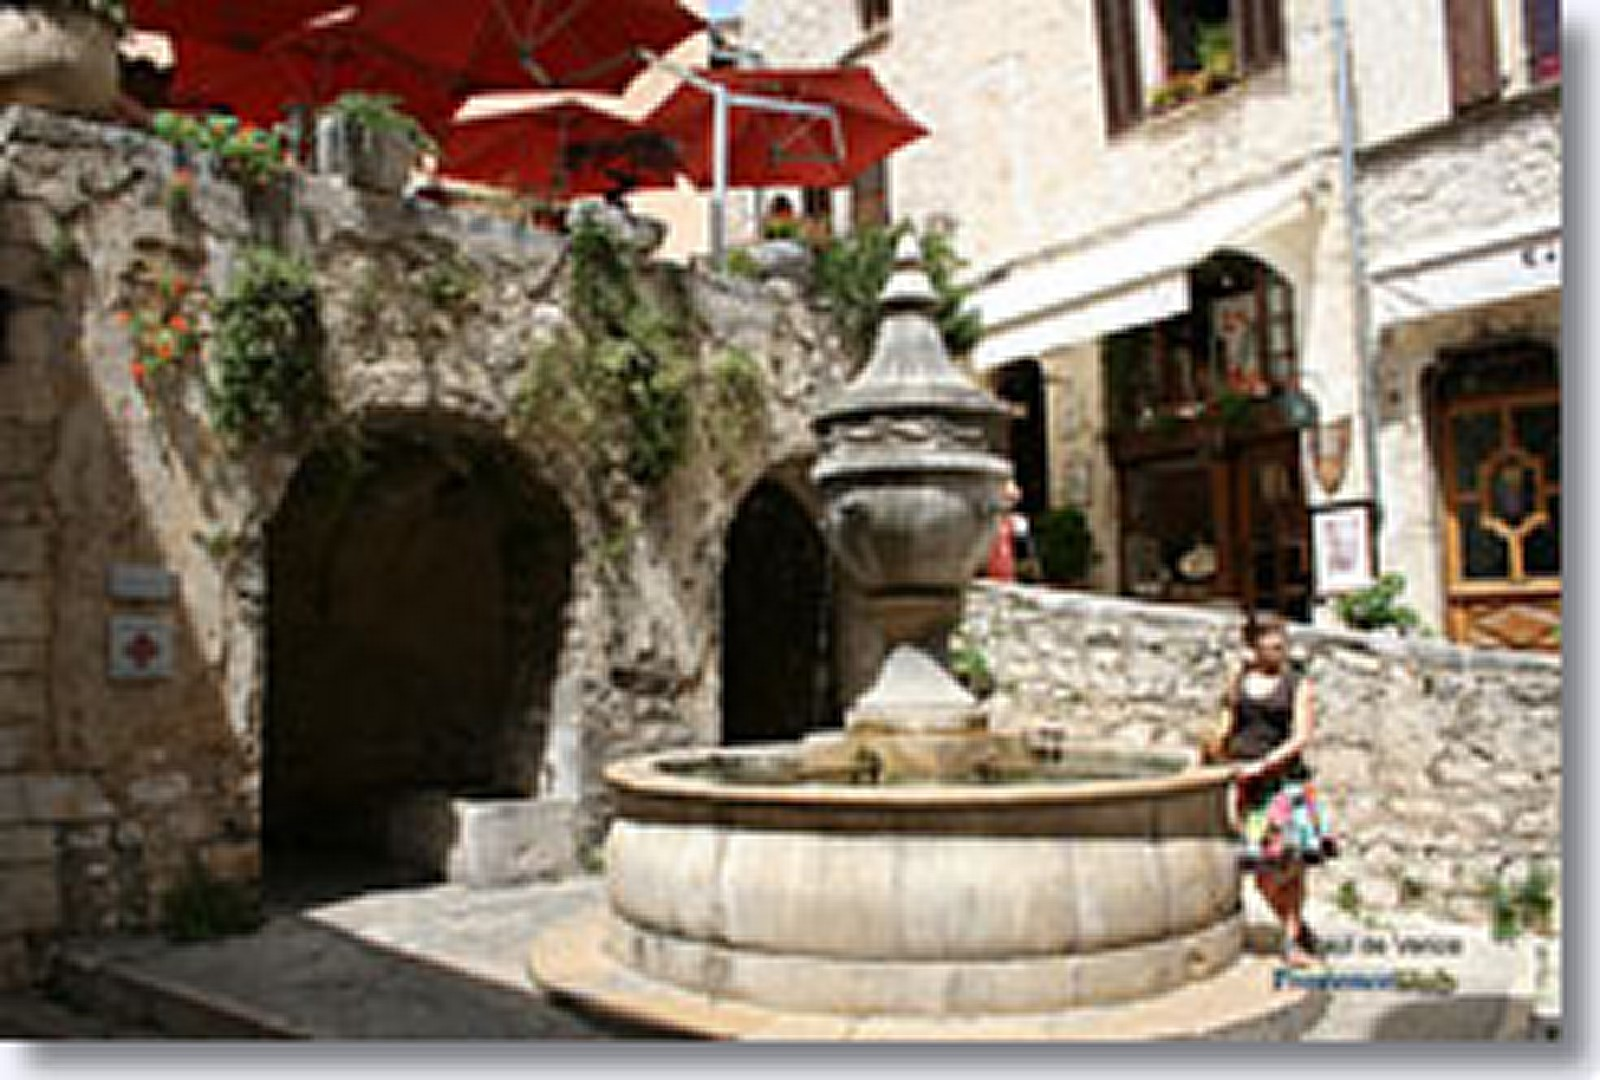 saint-paul-de-vence-grande-fontaine